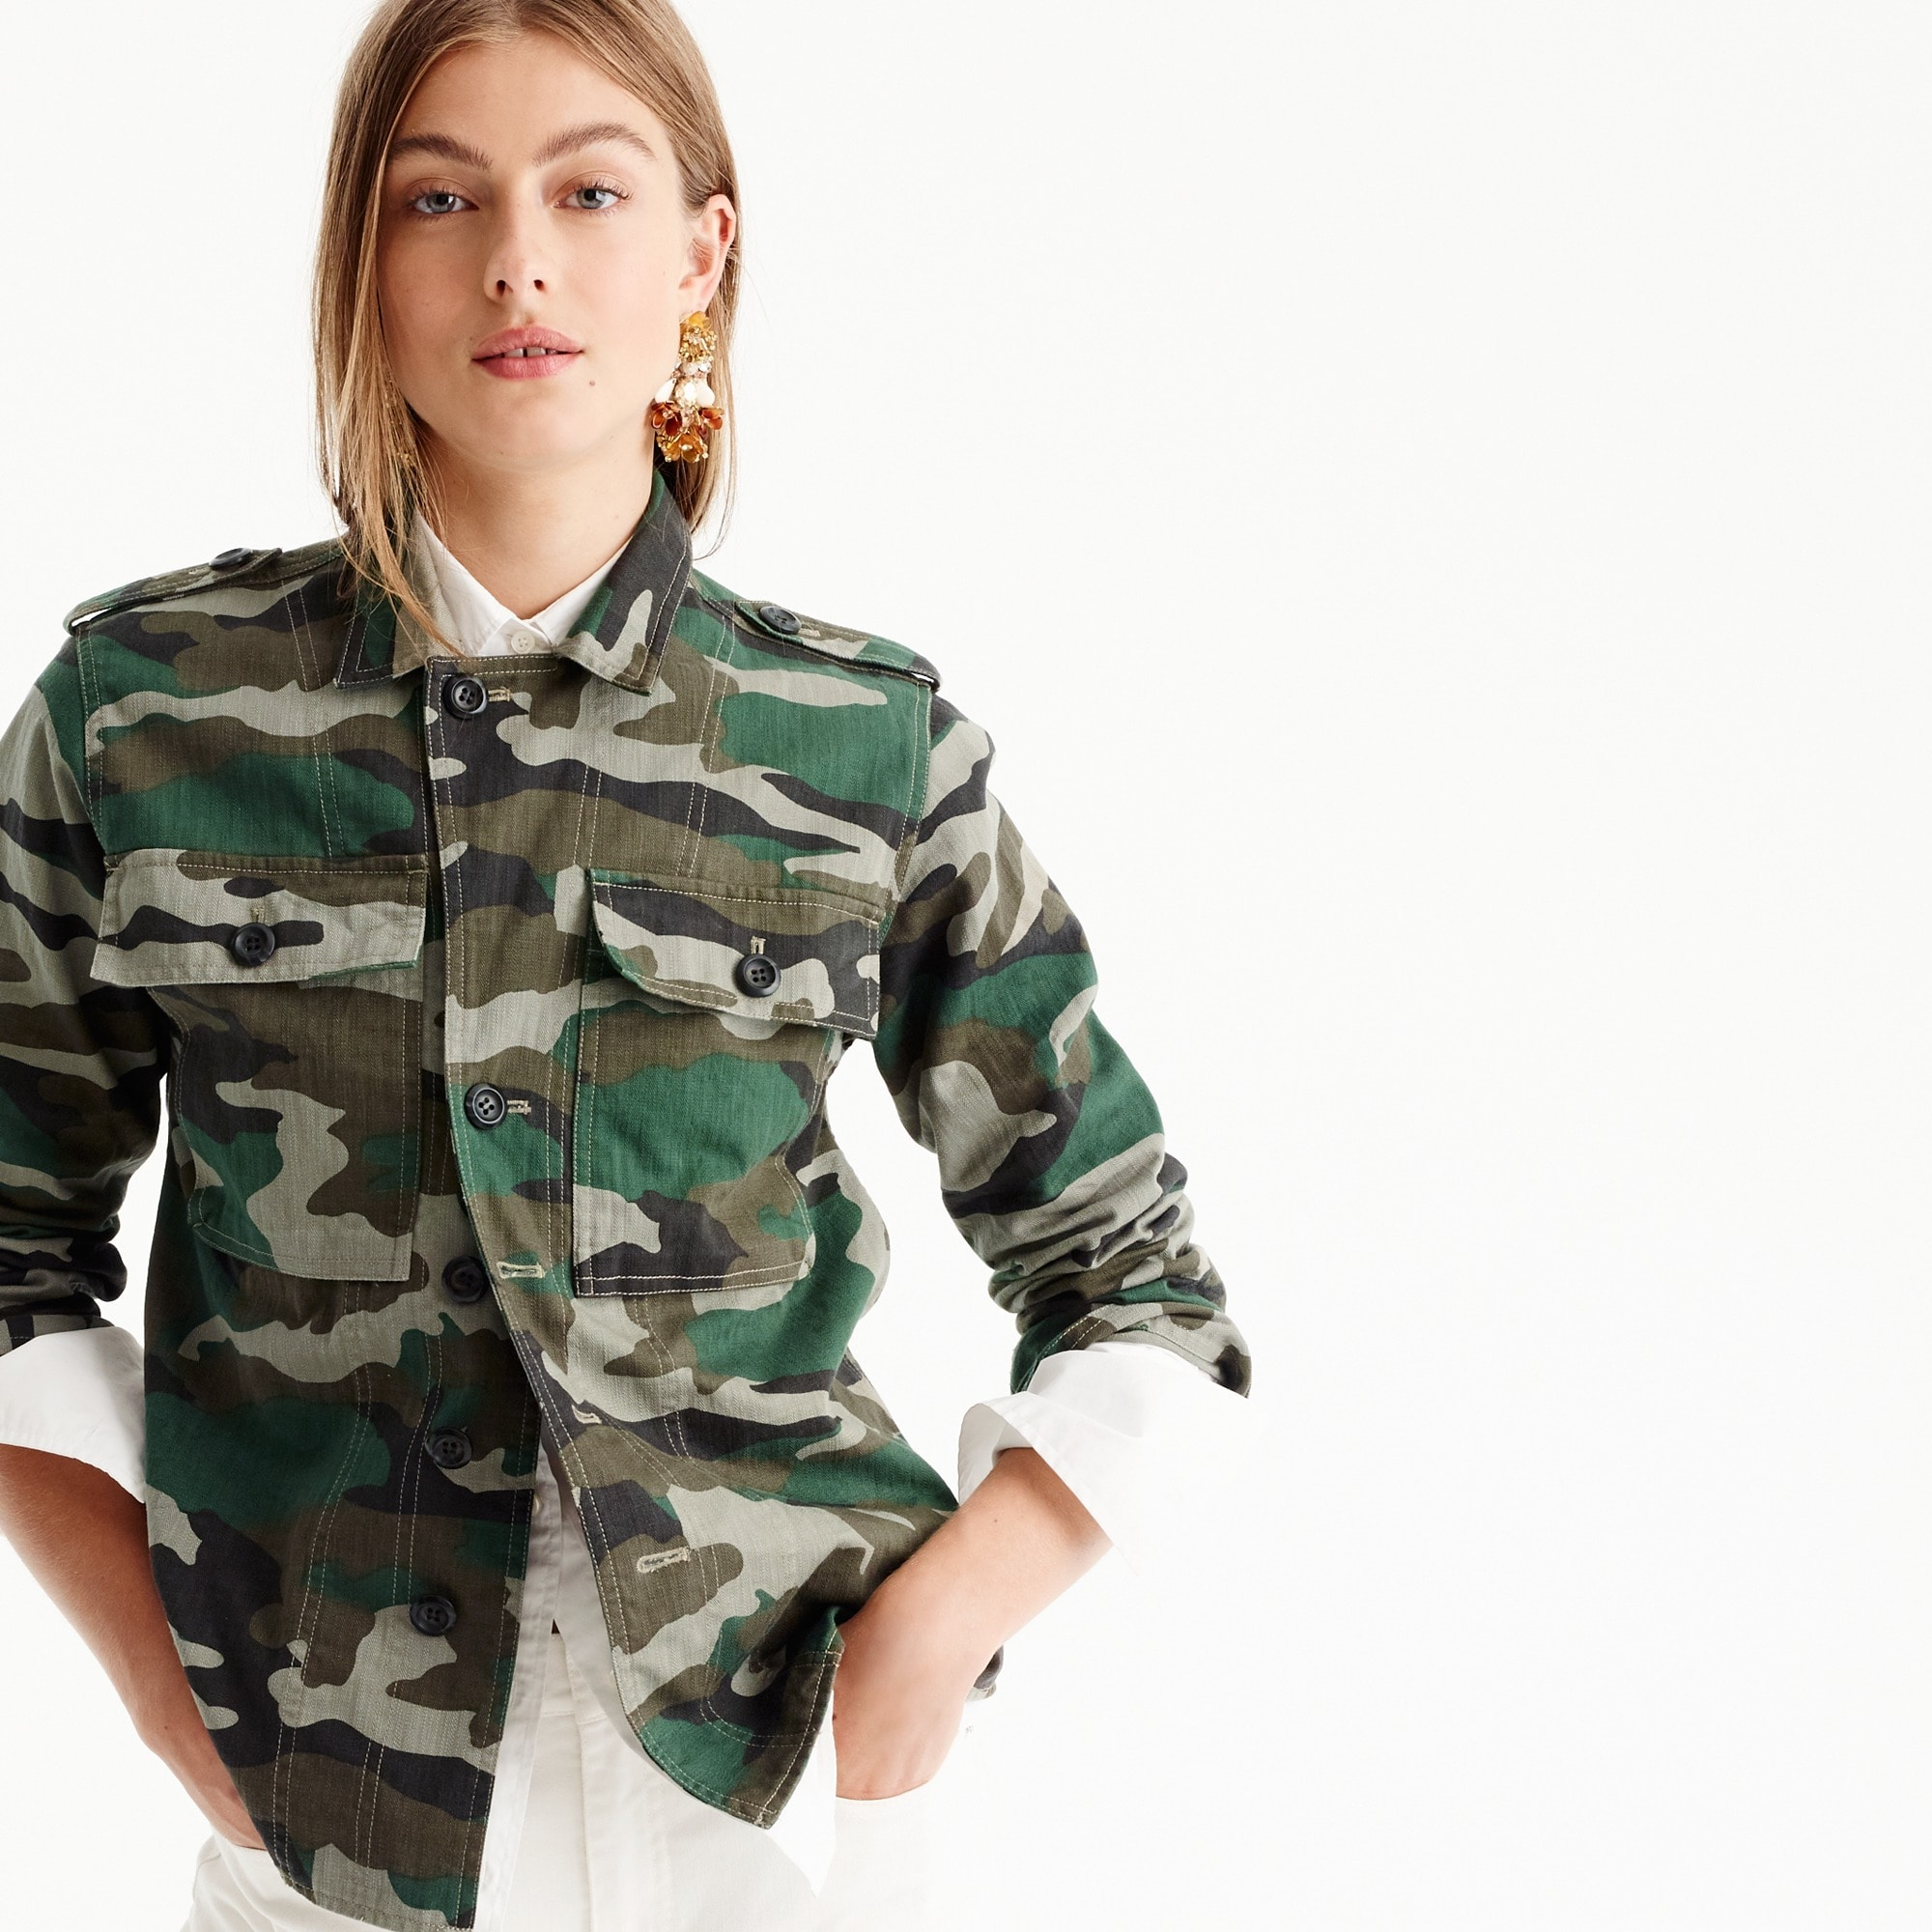 Image 2 for Camouflage utility shirt-jacket